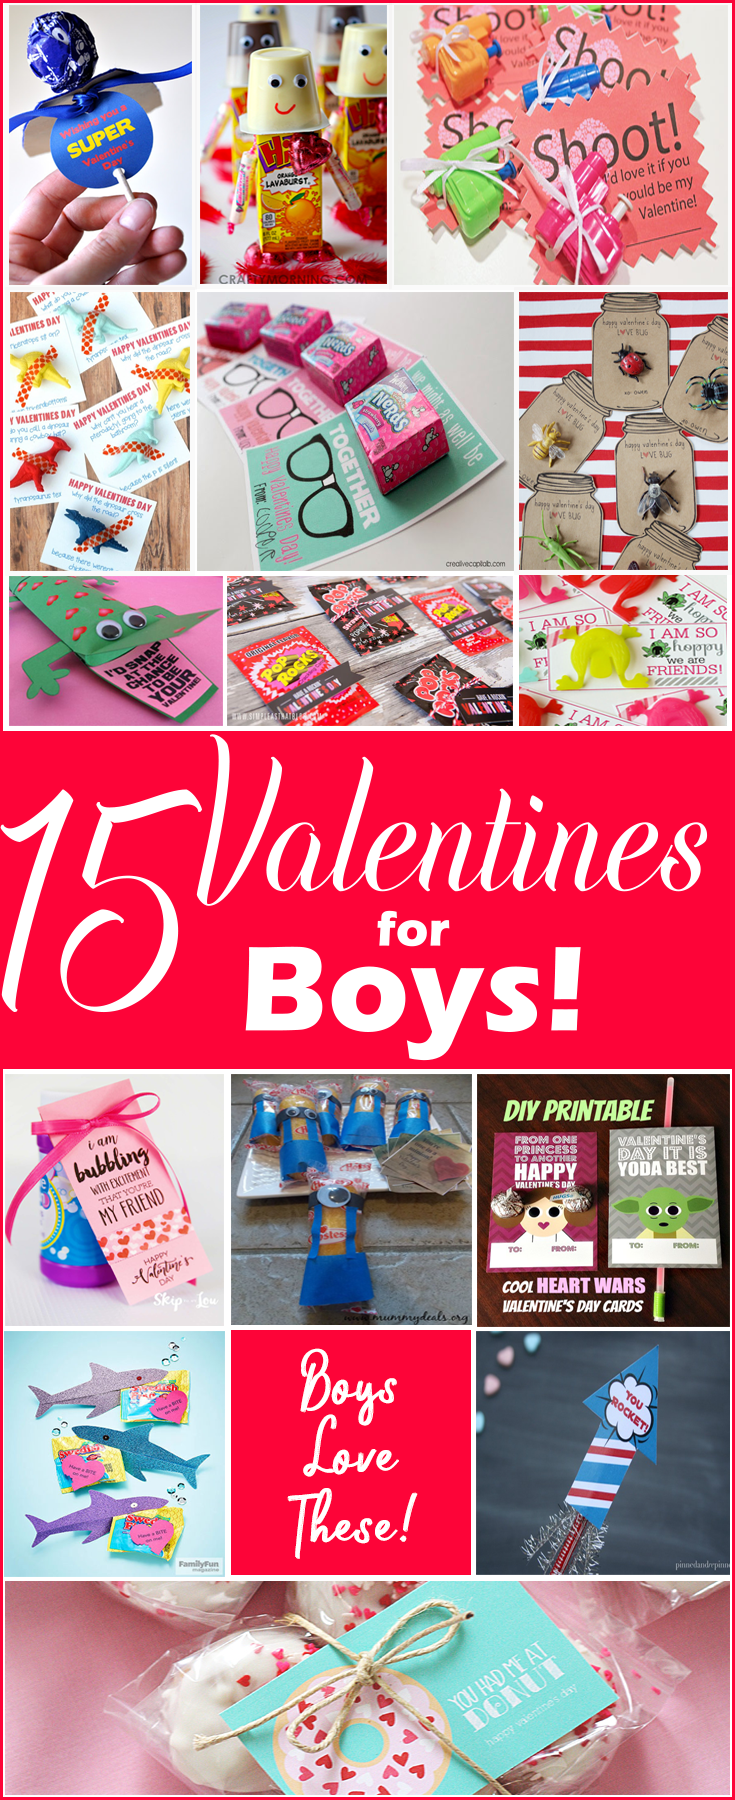 15 Valentines for Boys